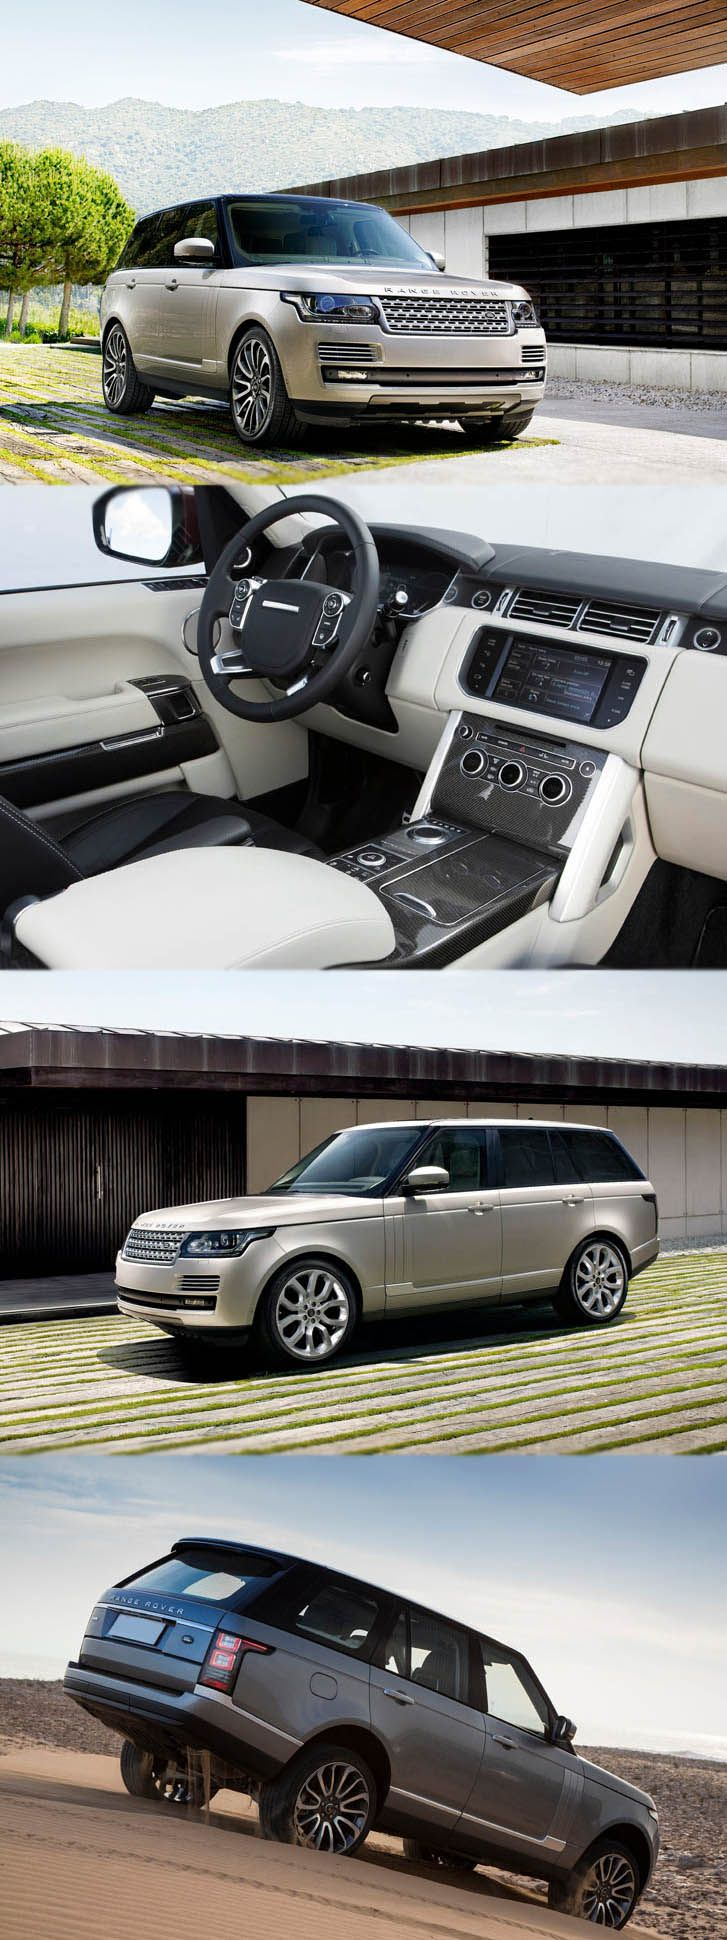 The great symoblic rnage rover for more detail https www rangerovergearbox